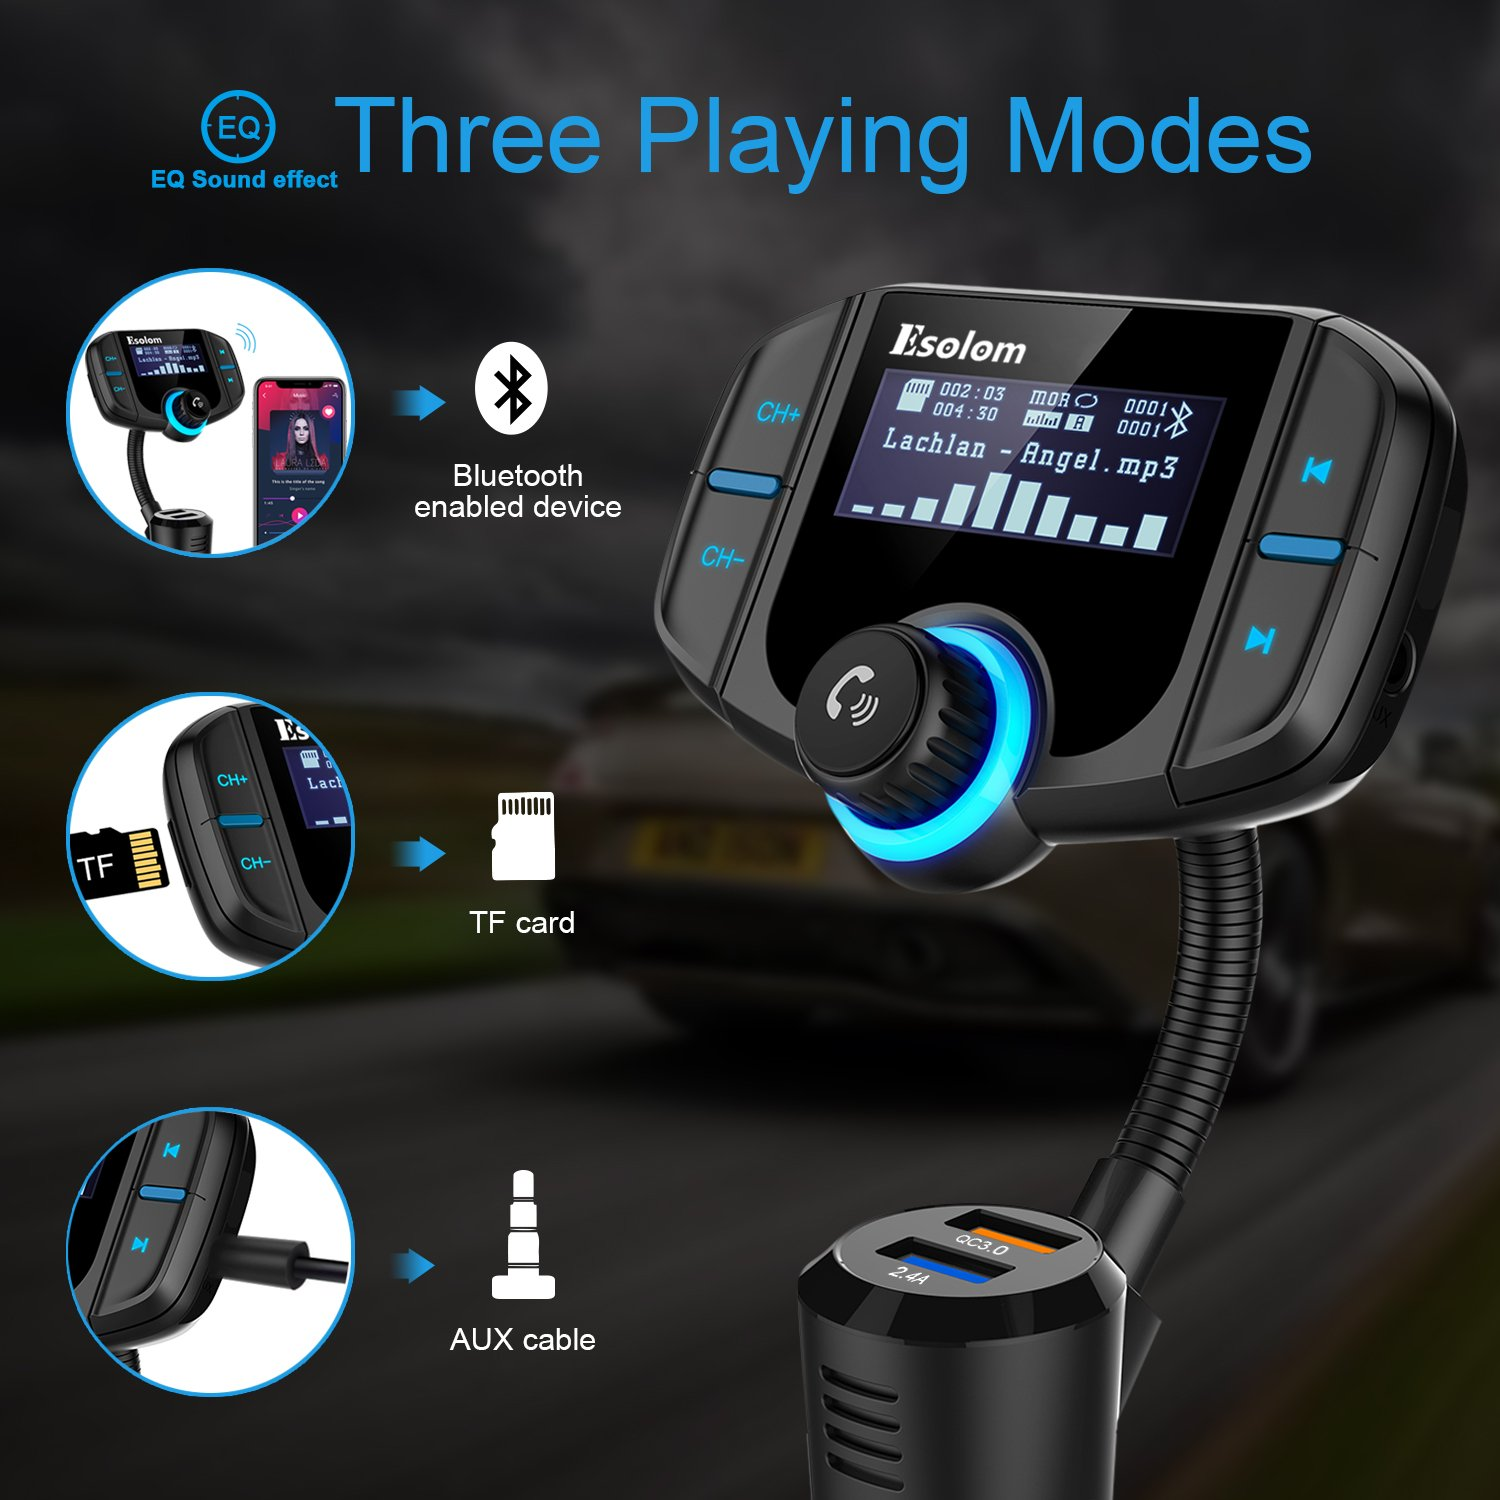 """Bluetooth FM Transmitter, ESOLOM Wireless Car Stereo Radio Adapter Receiver, Hands-free Calling Car Kit with 1.7"""" Display, QC3.0 & Smart 2.4A Dual USB Ports, Support TF Card, AUX Input/Output by ESOLOM (Image #3)"""